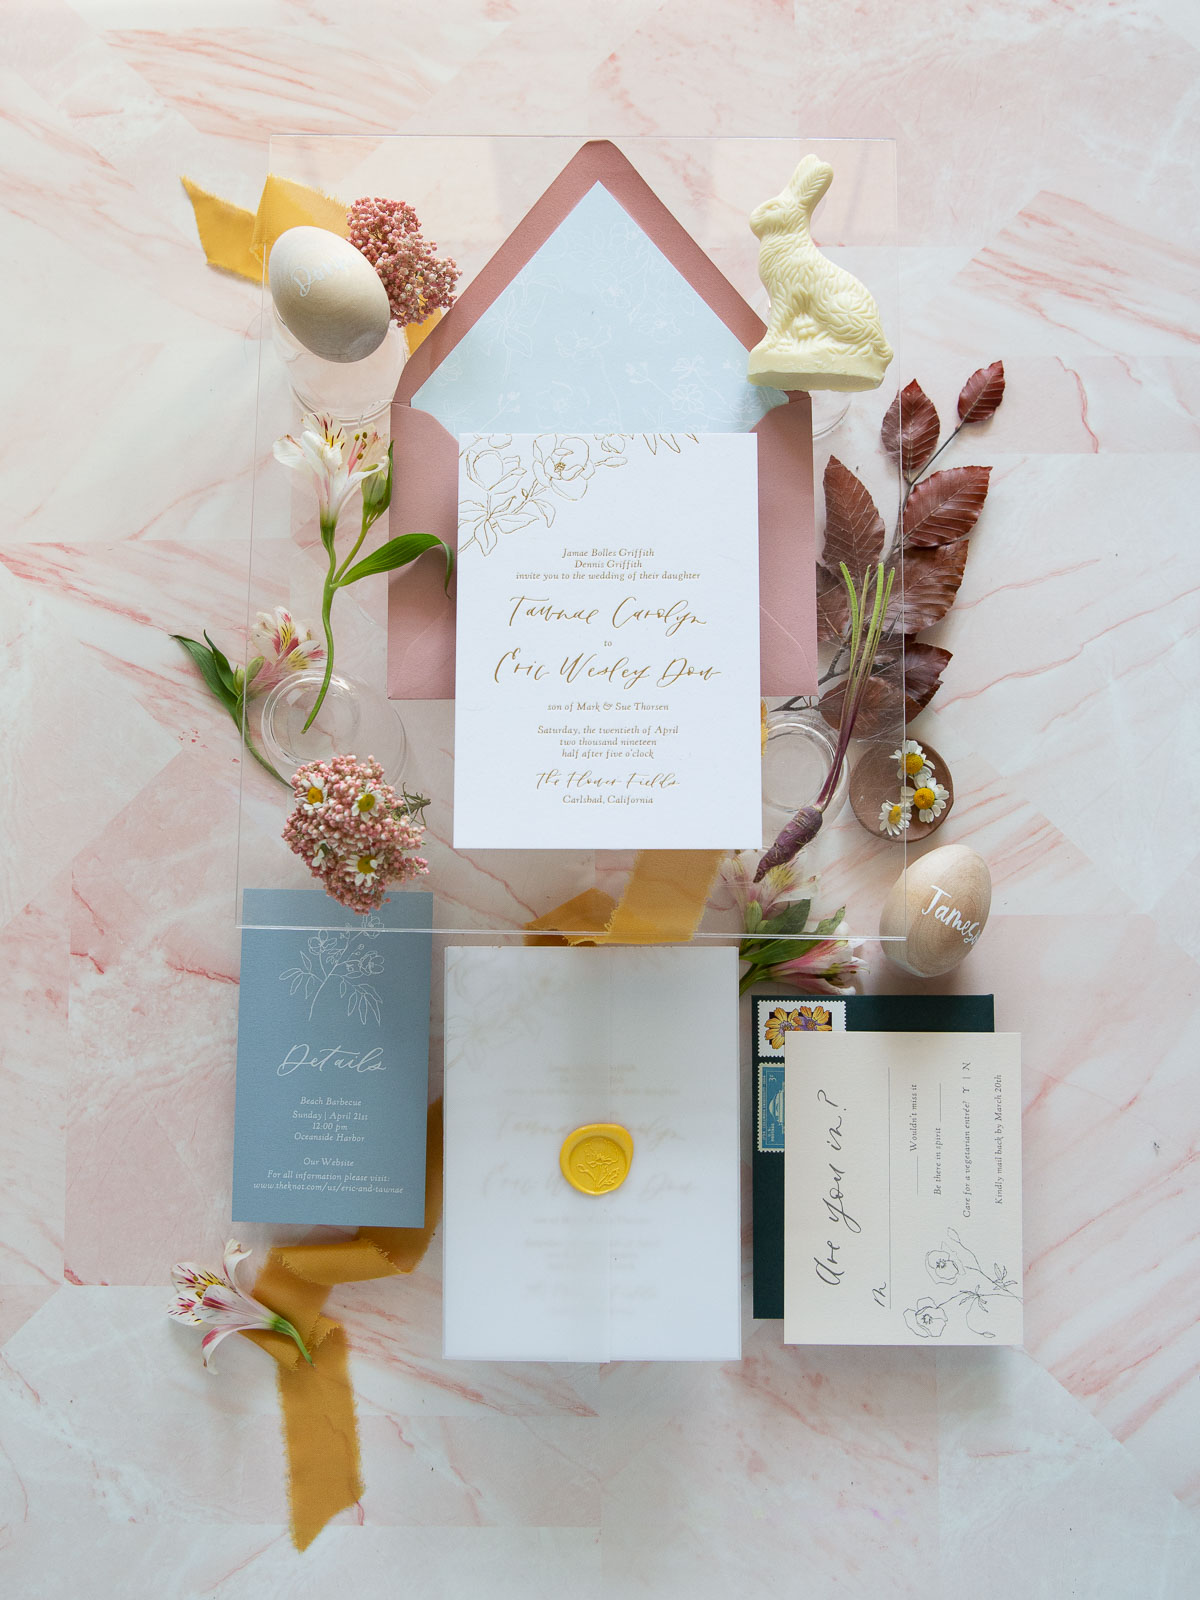 pastel blue and pink with yellow accent wedding stationery